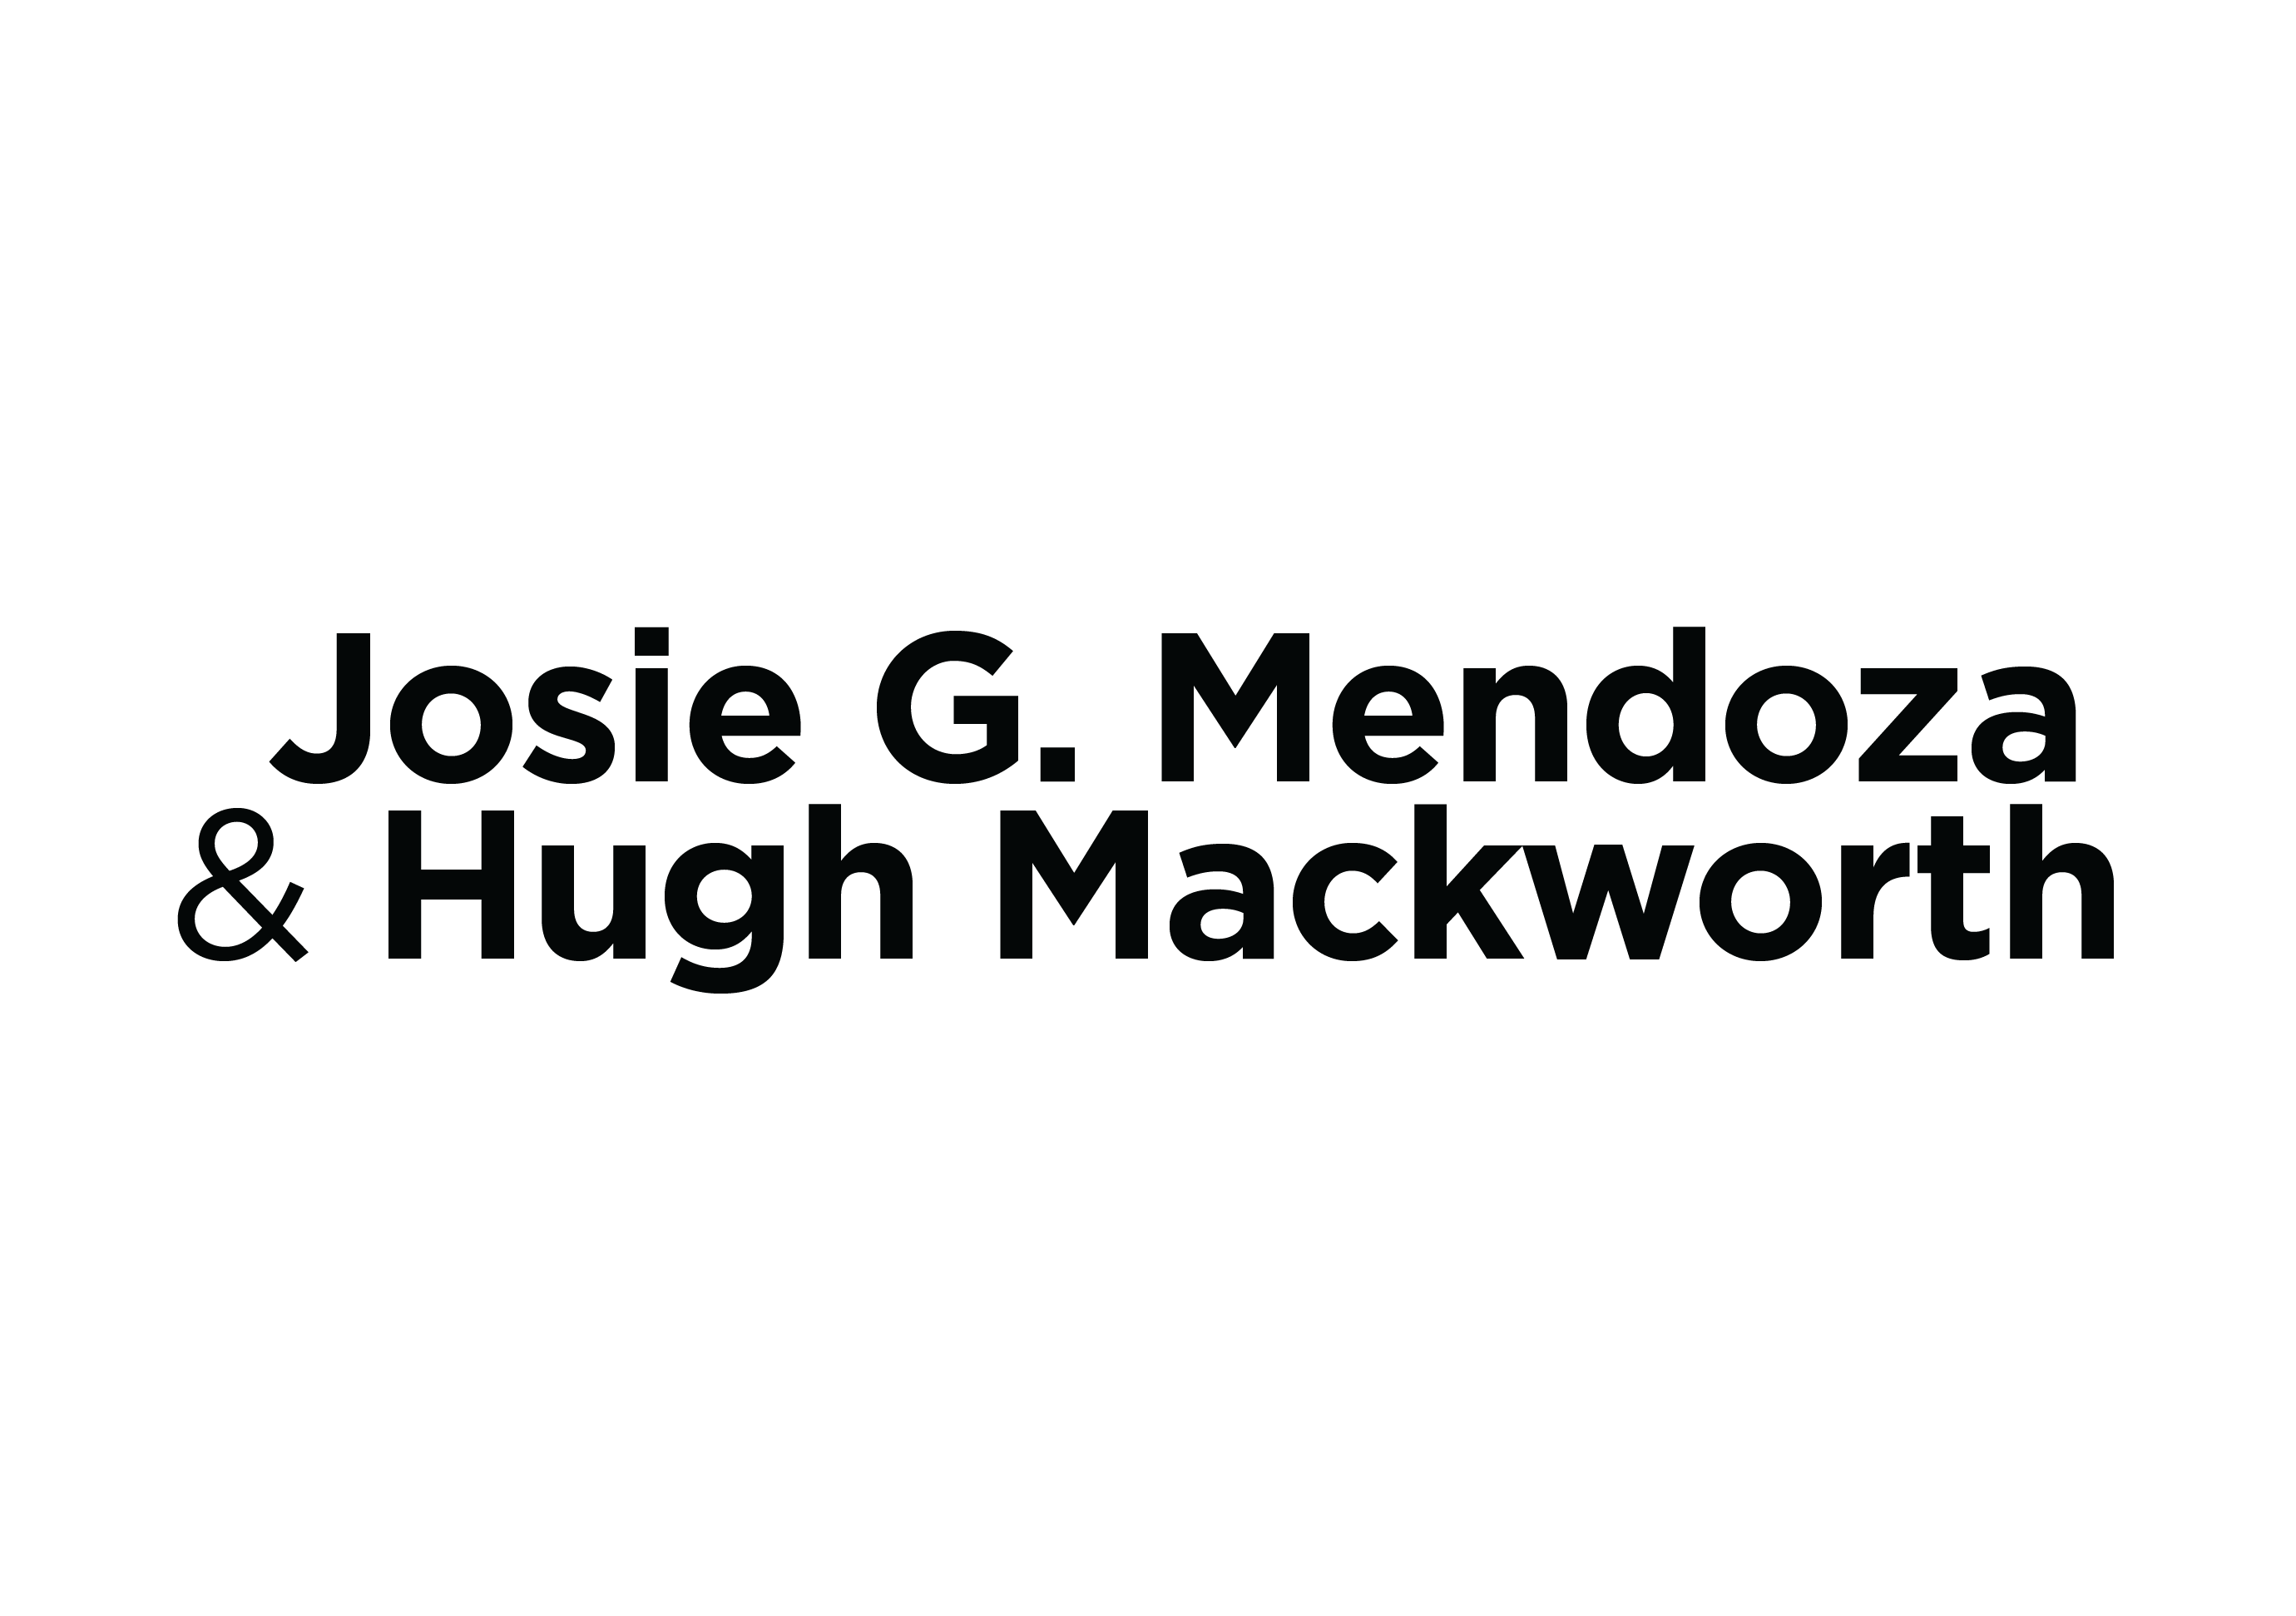 Jose G. Mendoza & Hugh Mackworth